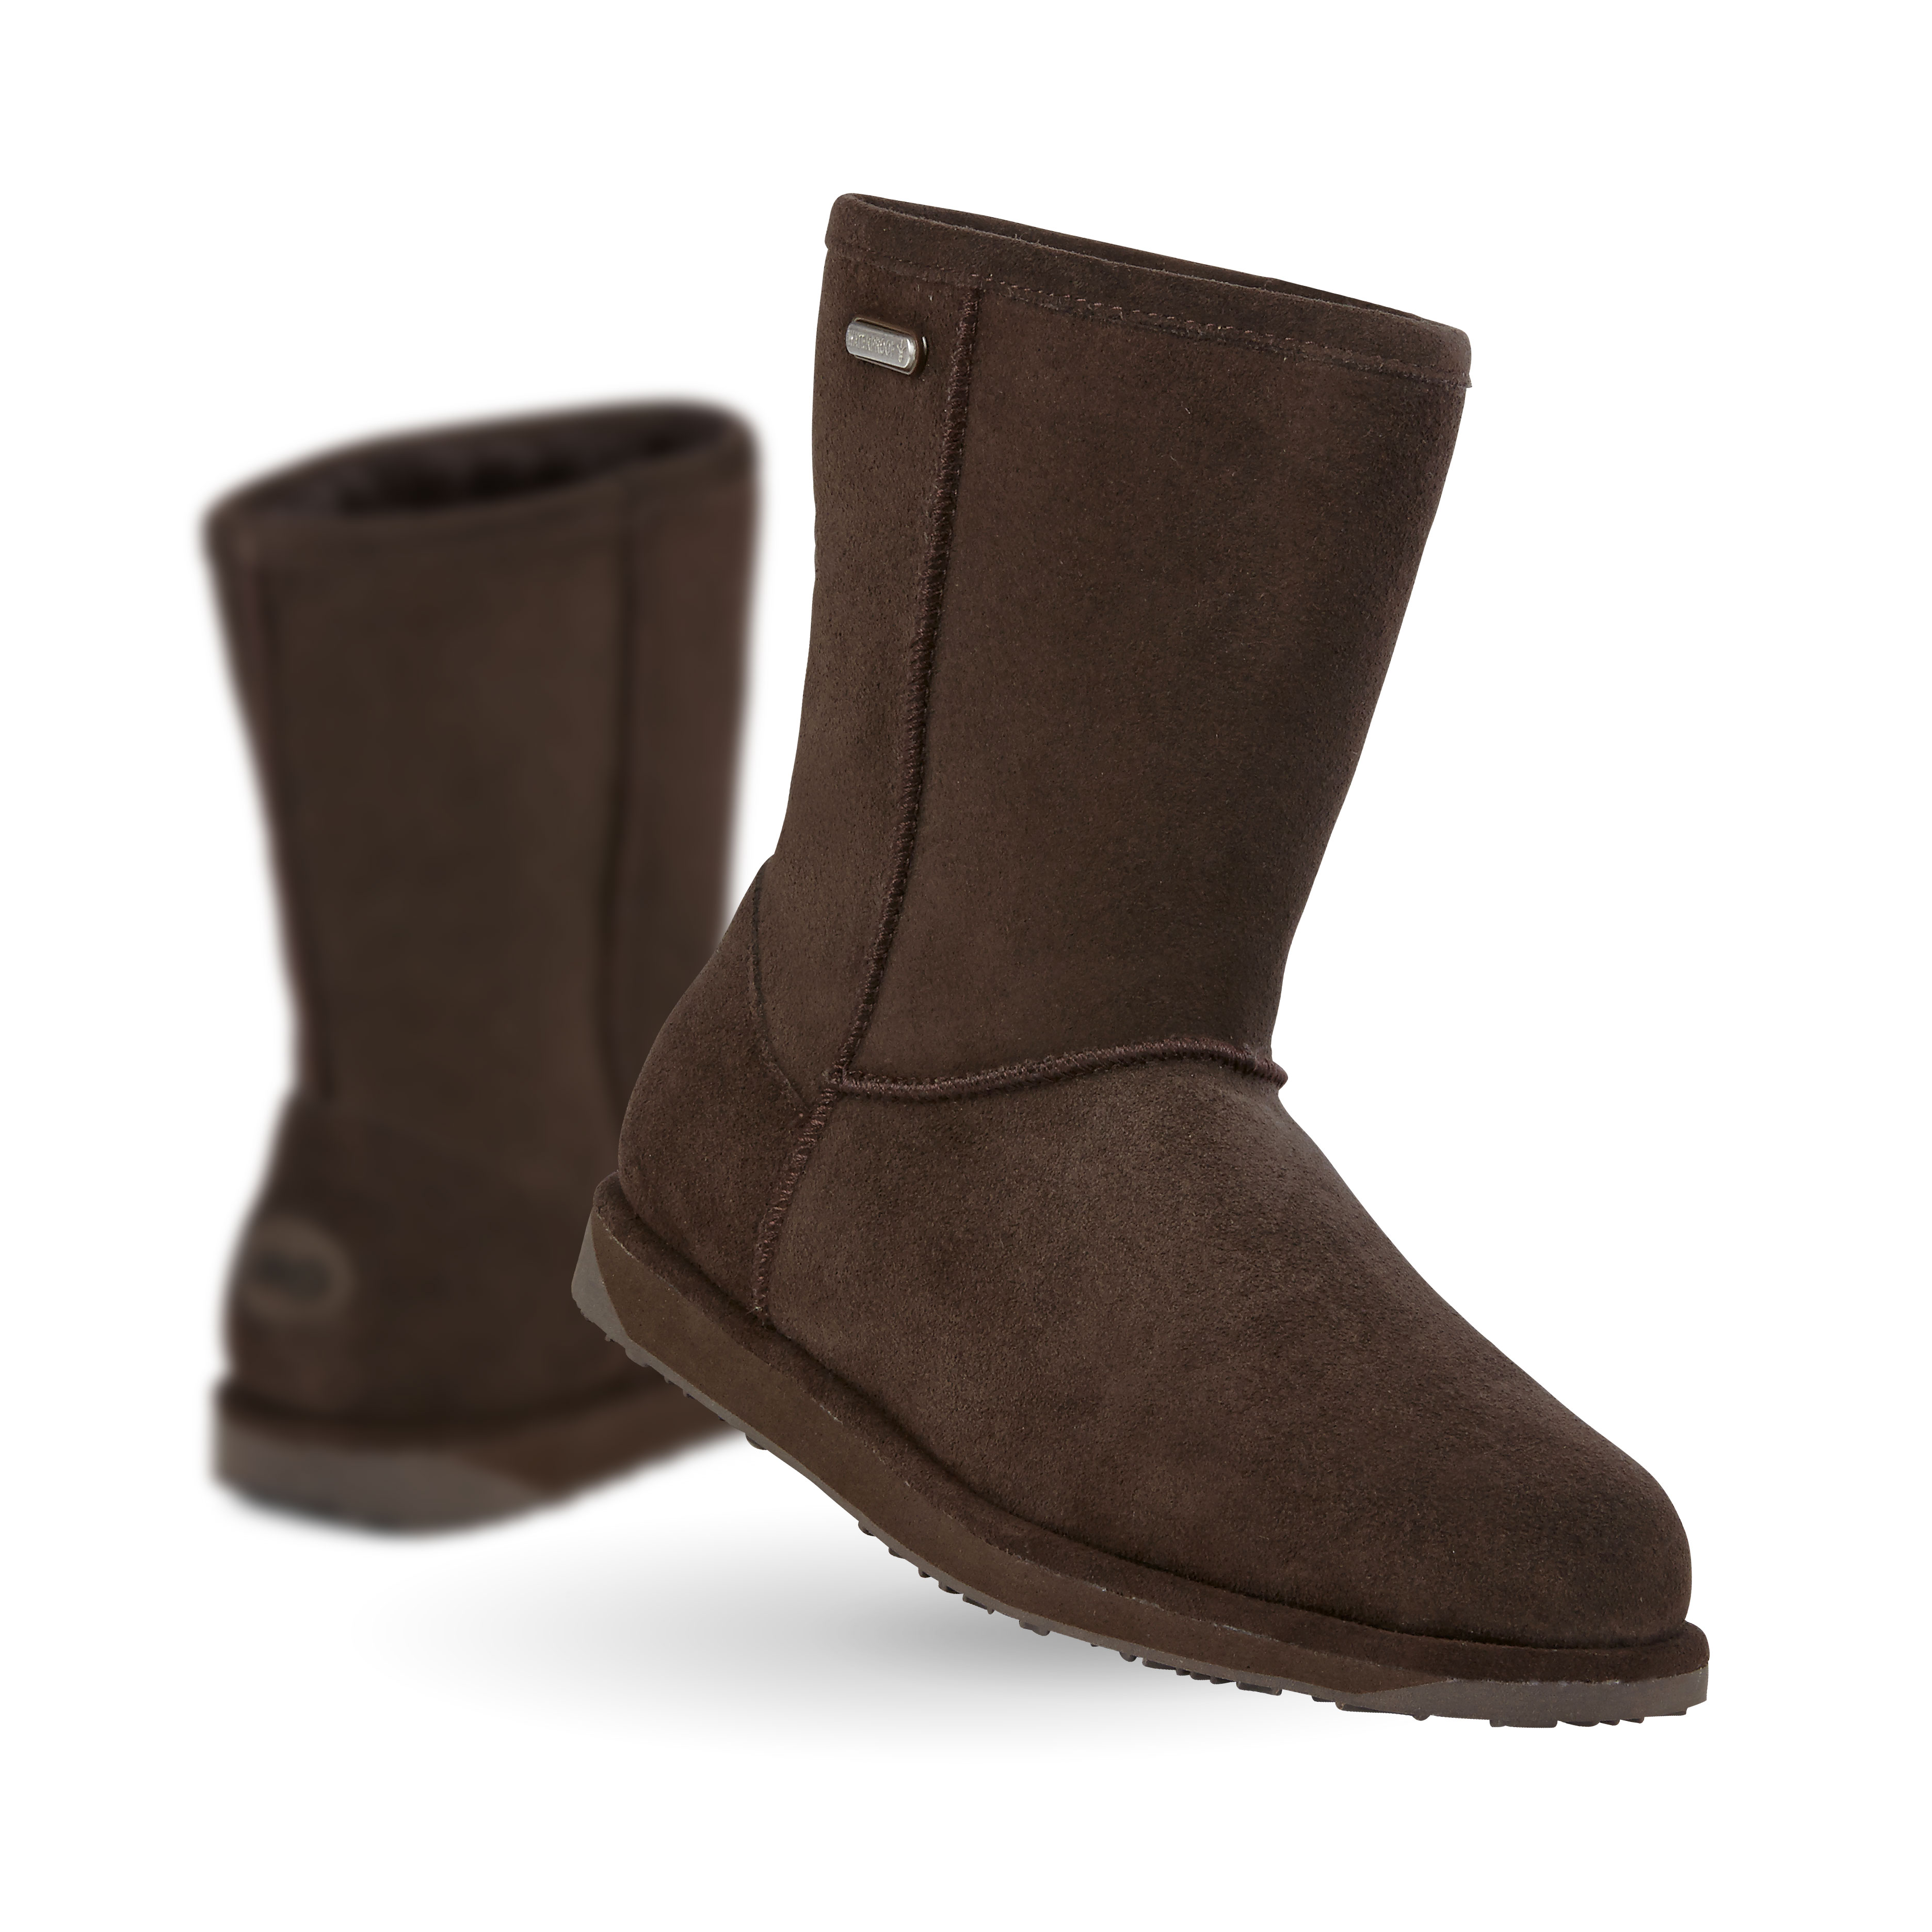 9d8afb743ae Details about EMU Australia Paterson Lo Womens Waterproof Sheepskin Boots